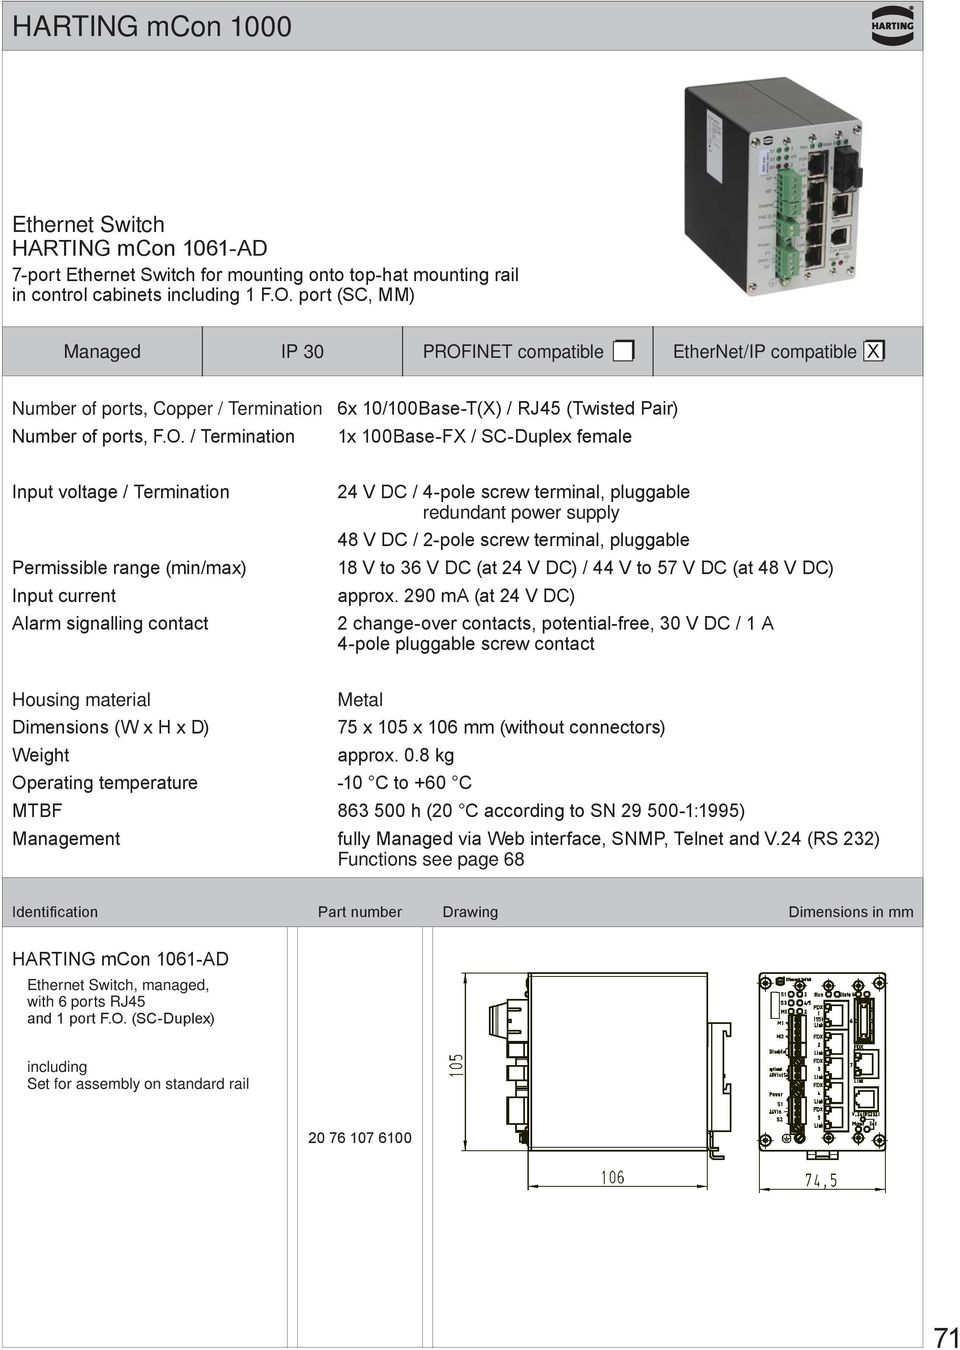 INET compatible EtherNet/IP compatible X Number of ports, Copper / Termination 6x 10/100Base-T(X) / RJ45 (Twisted Pair) Number of ports, F.O.